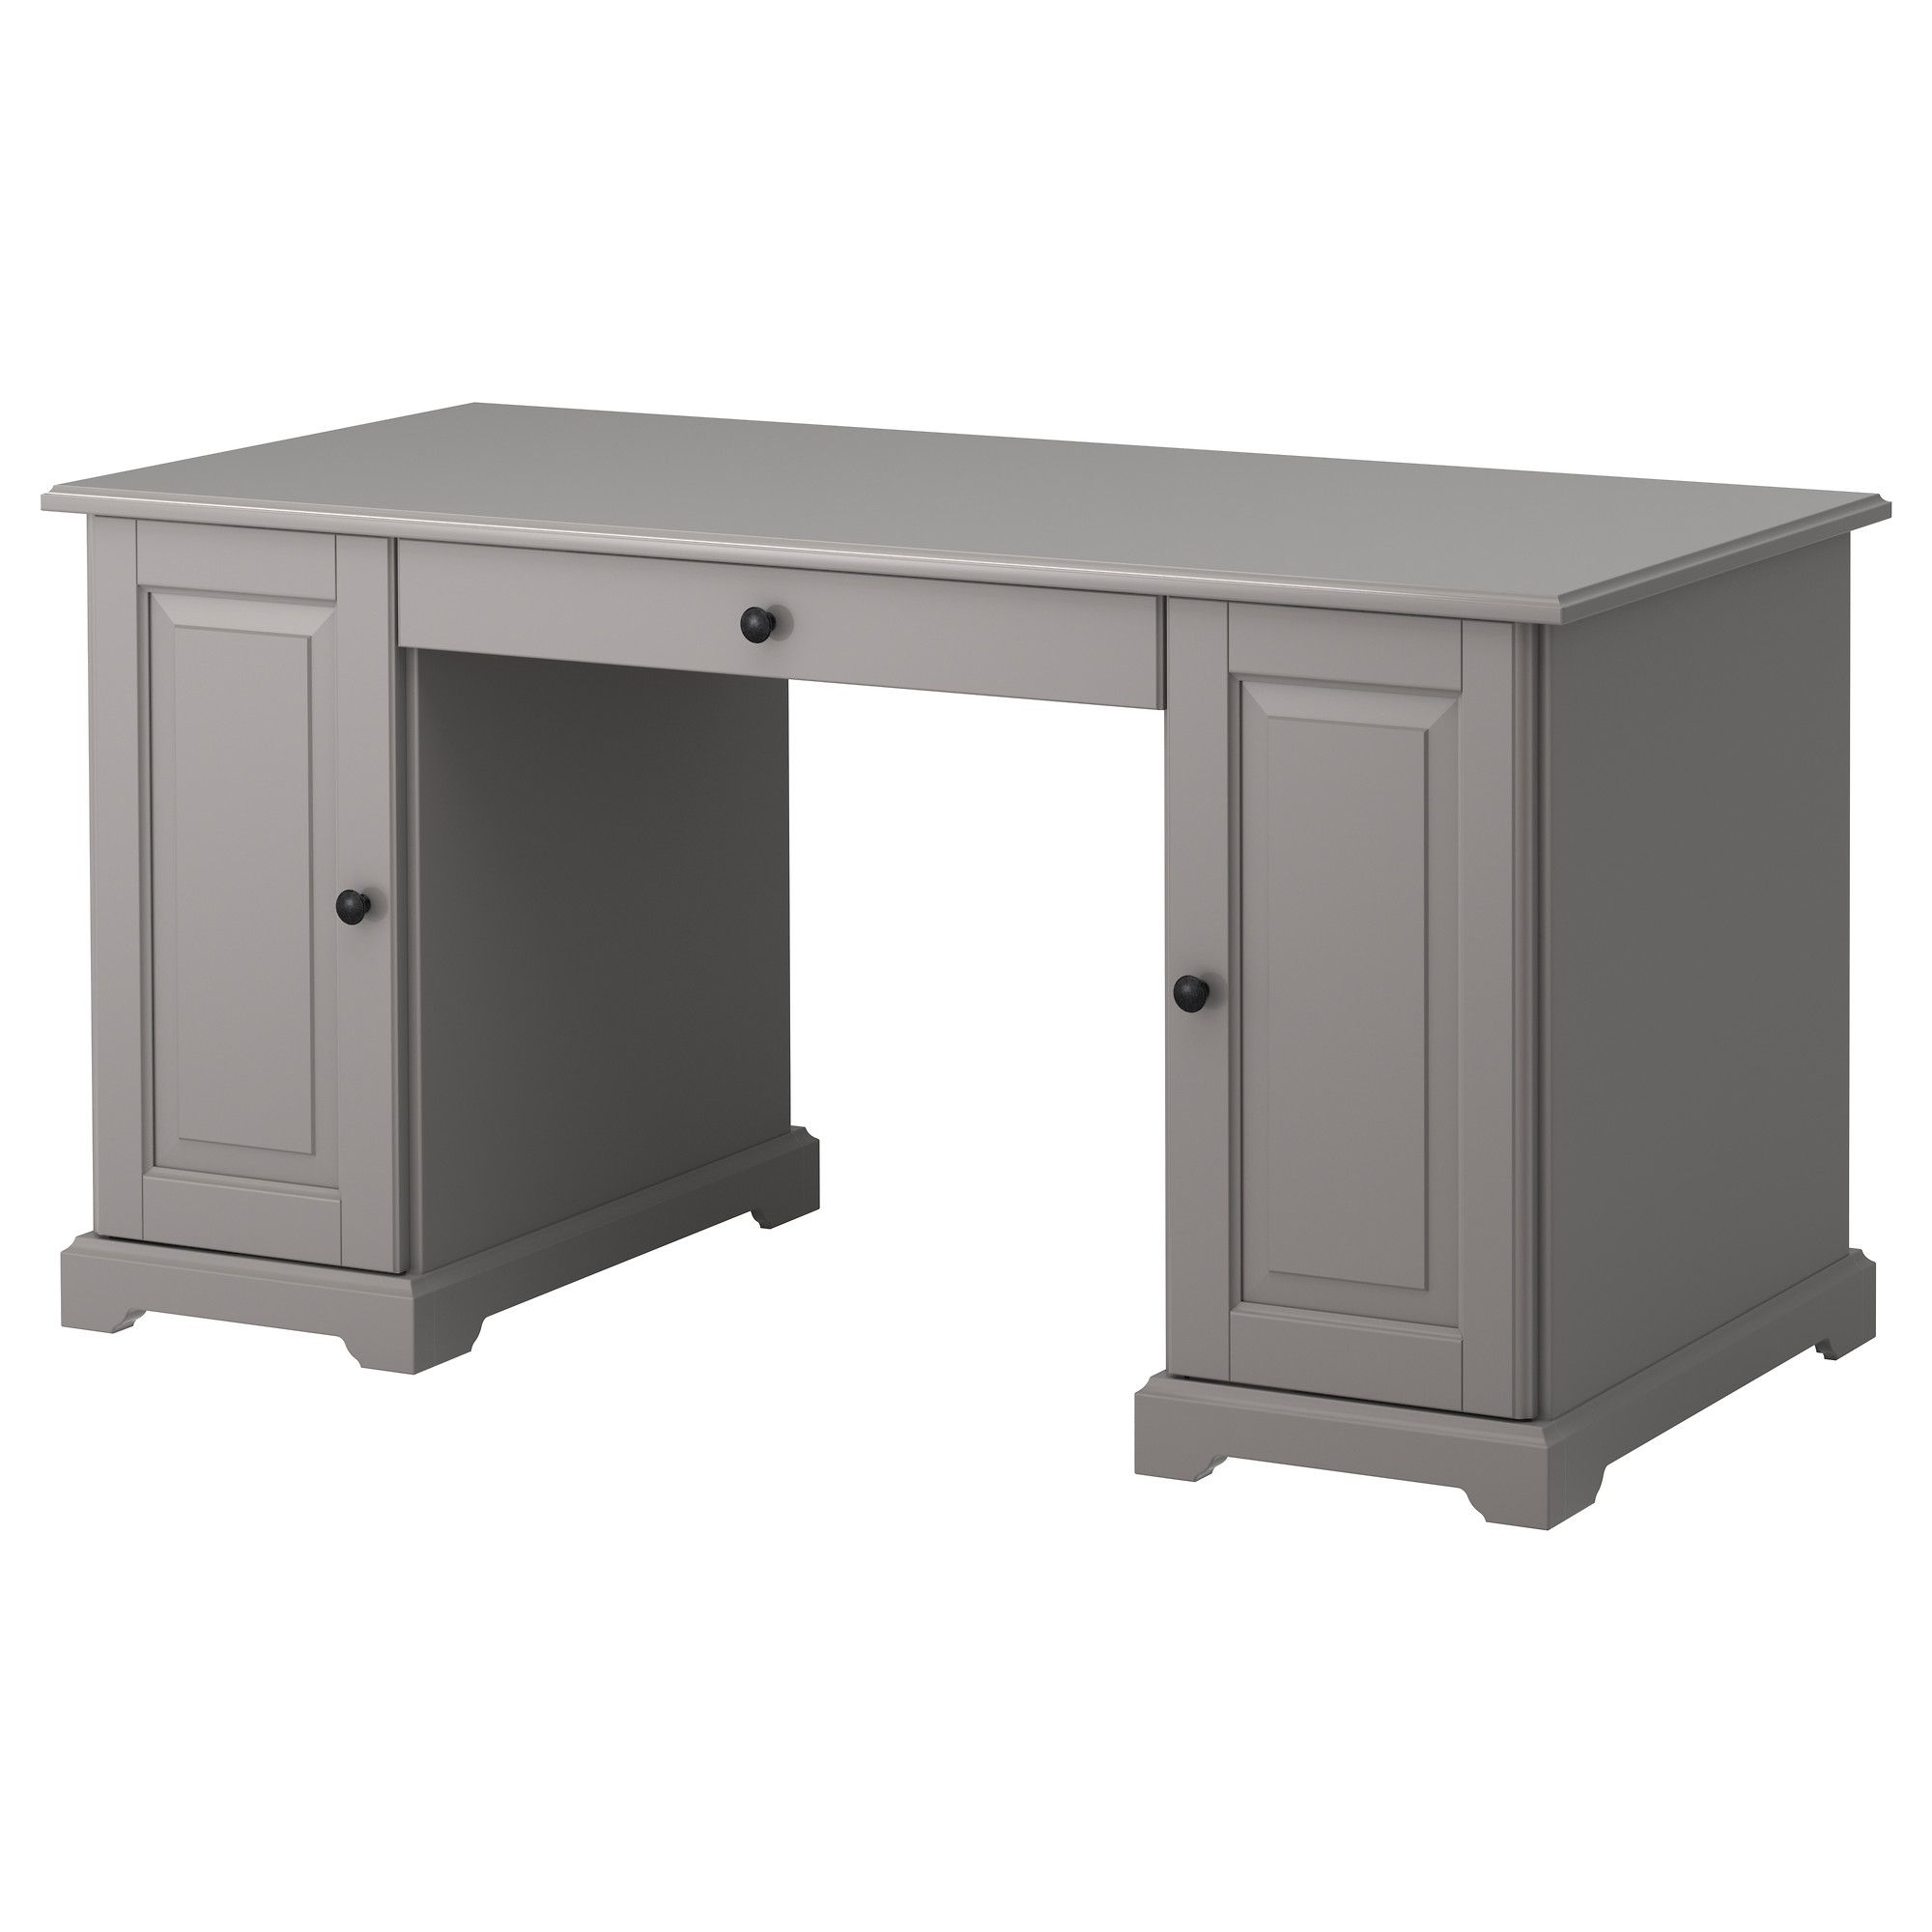 Ikea Liatorp Desk Gray You Can Fit A Computer In The Cabinet Since Shelf Is Adjule Drawer Stops Prevent Drawers From Being Pulled Out Too